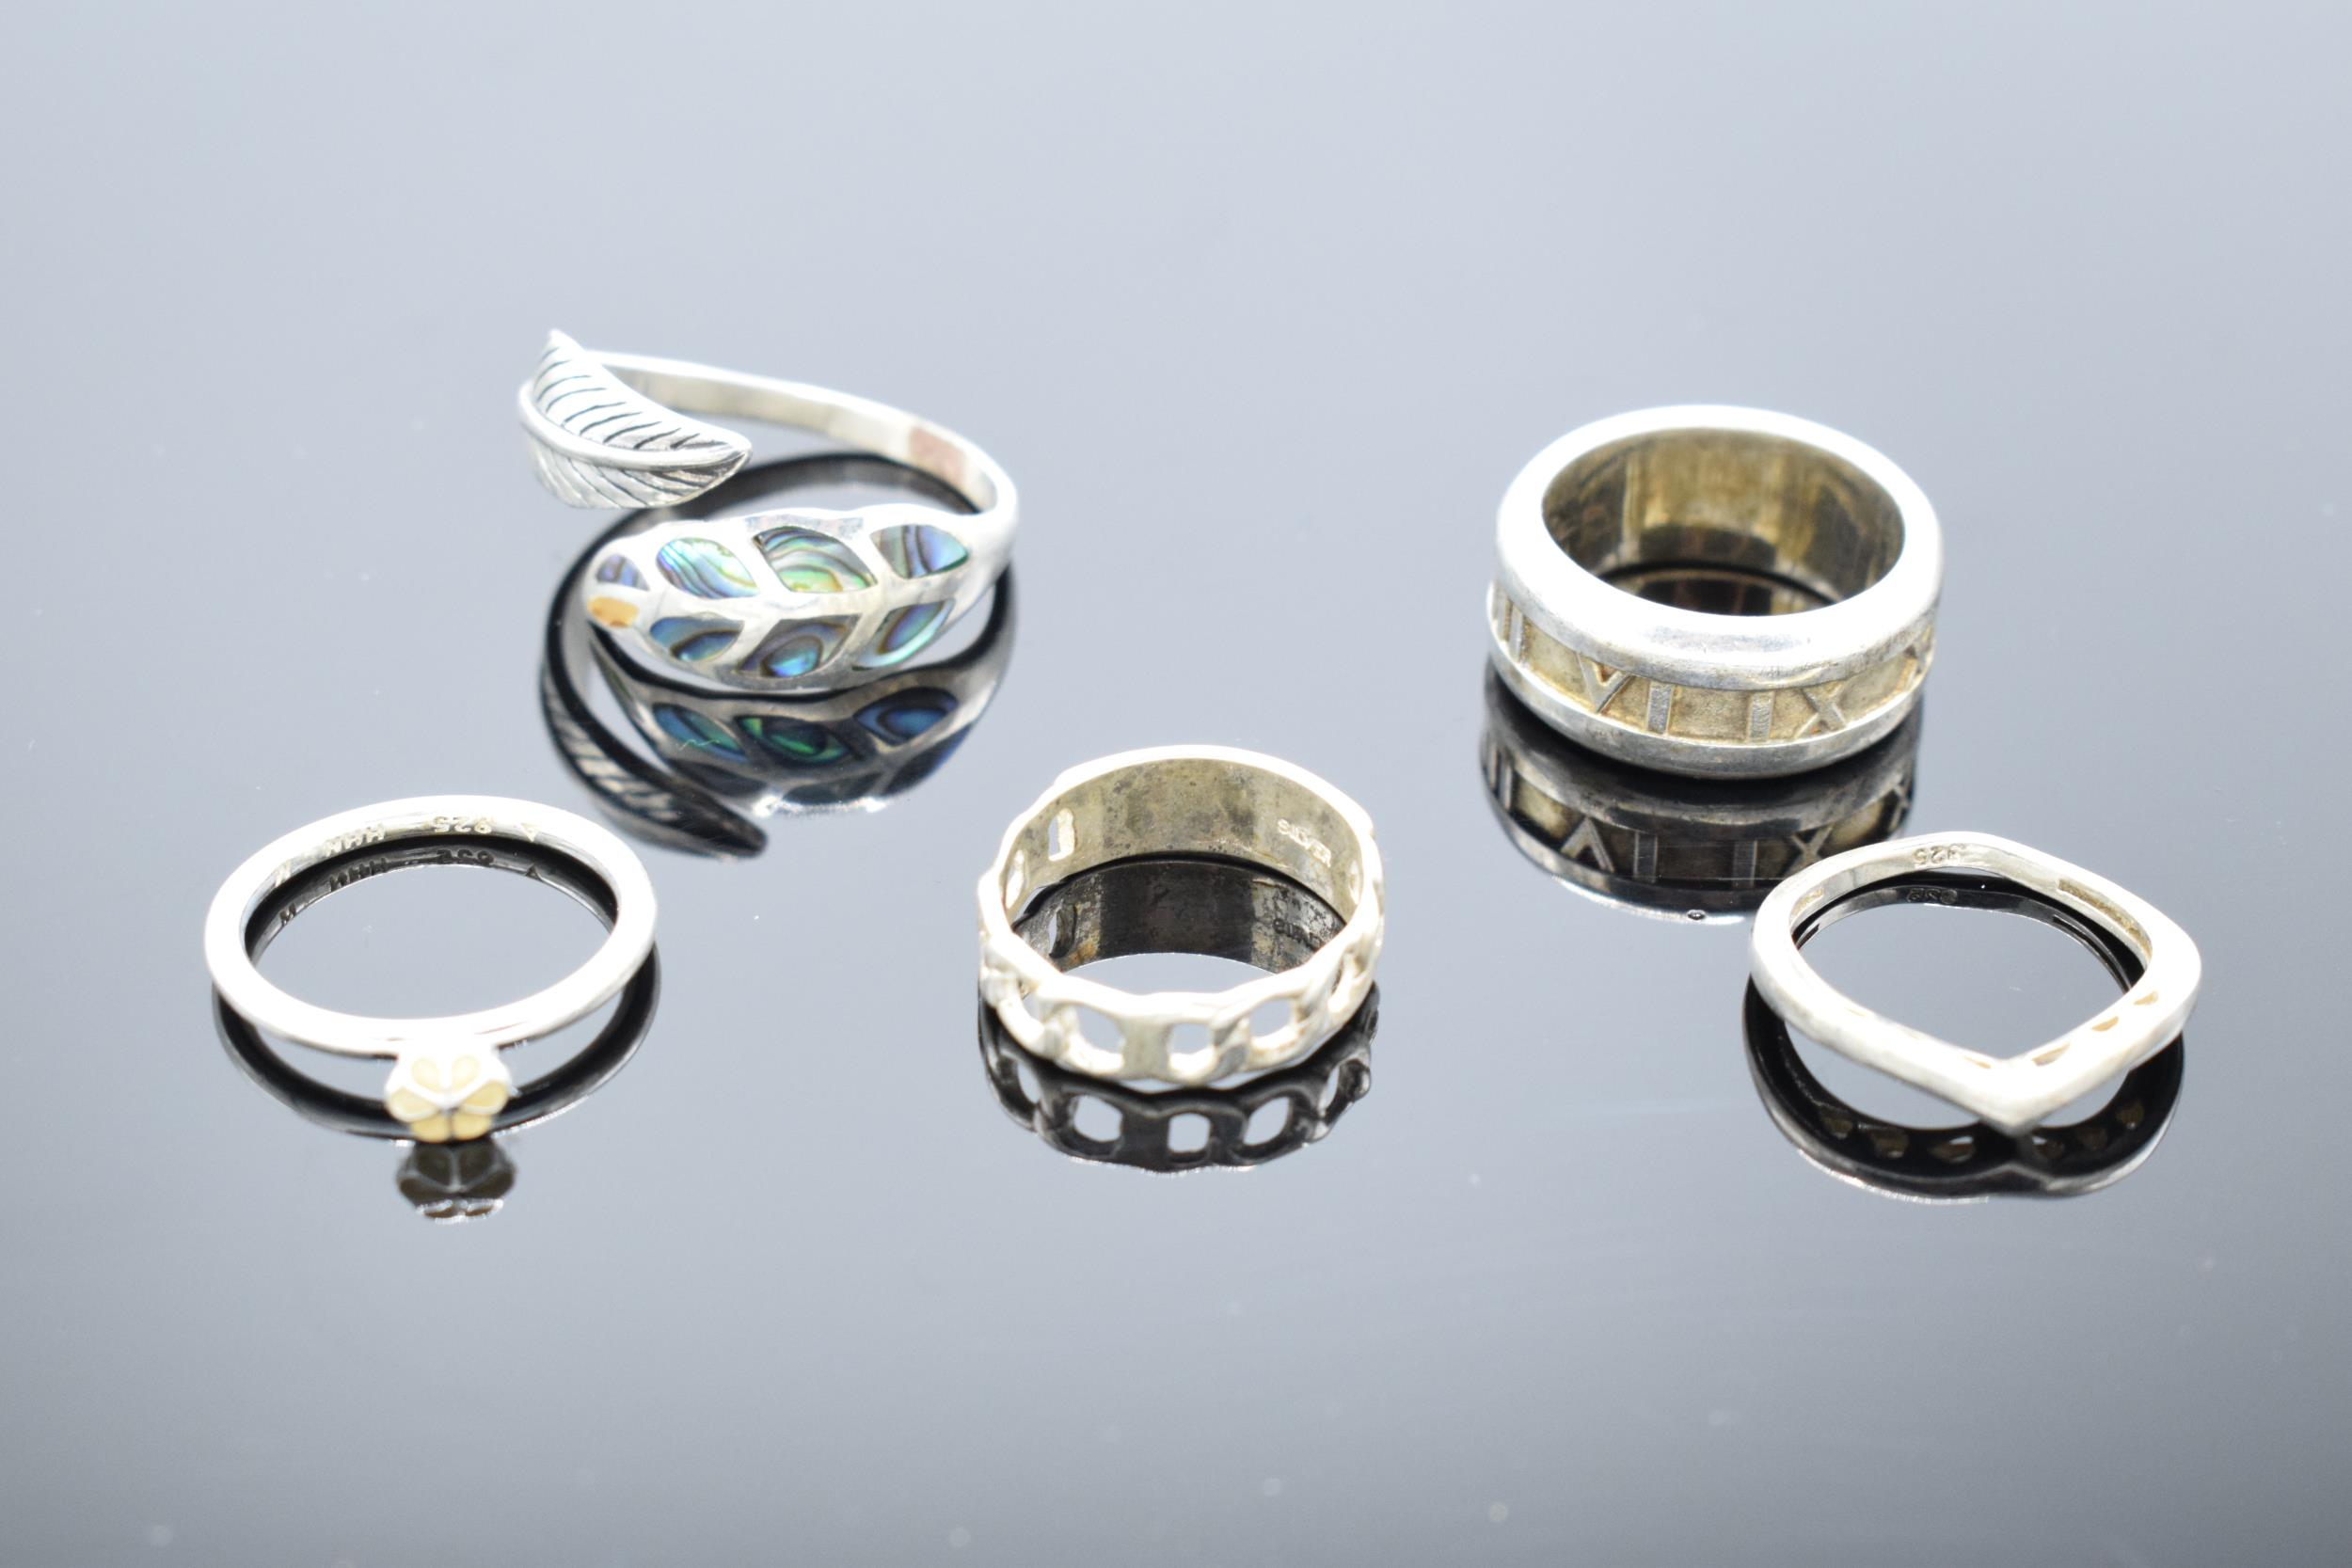 A collection of silver 925 rings to consist of various sizes and designs, some are set with semi-